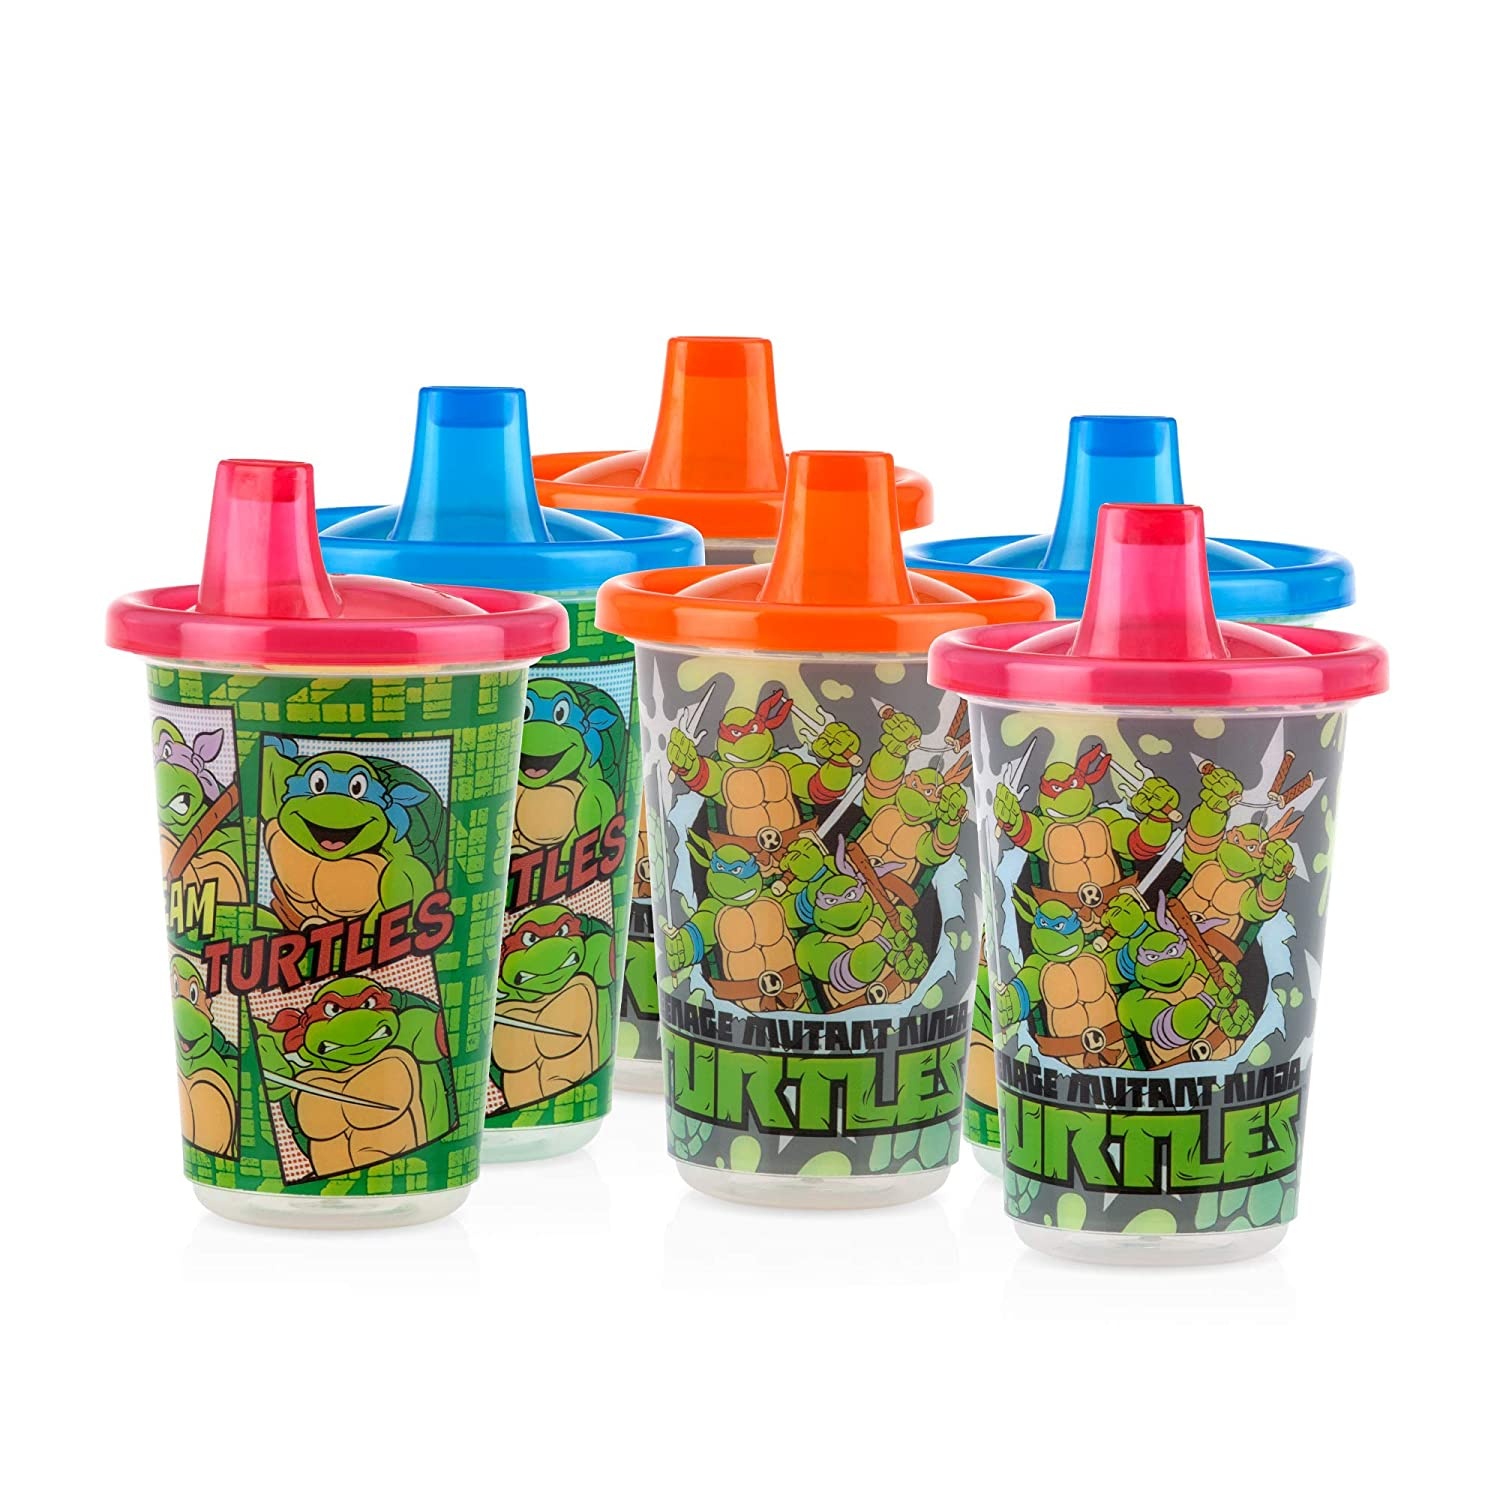 Nuby 6 Pack Wash or Toss Reusable Cups & Lids with Spout, Nickelodeon Teenage Mutant Ninja Turtles, 10 Oz